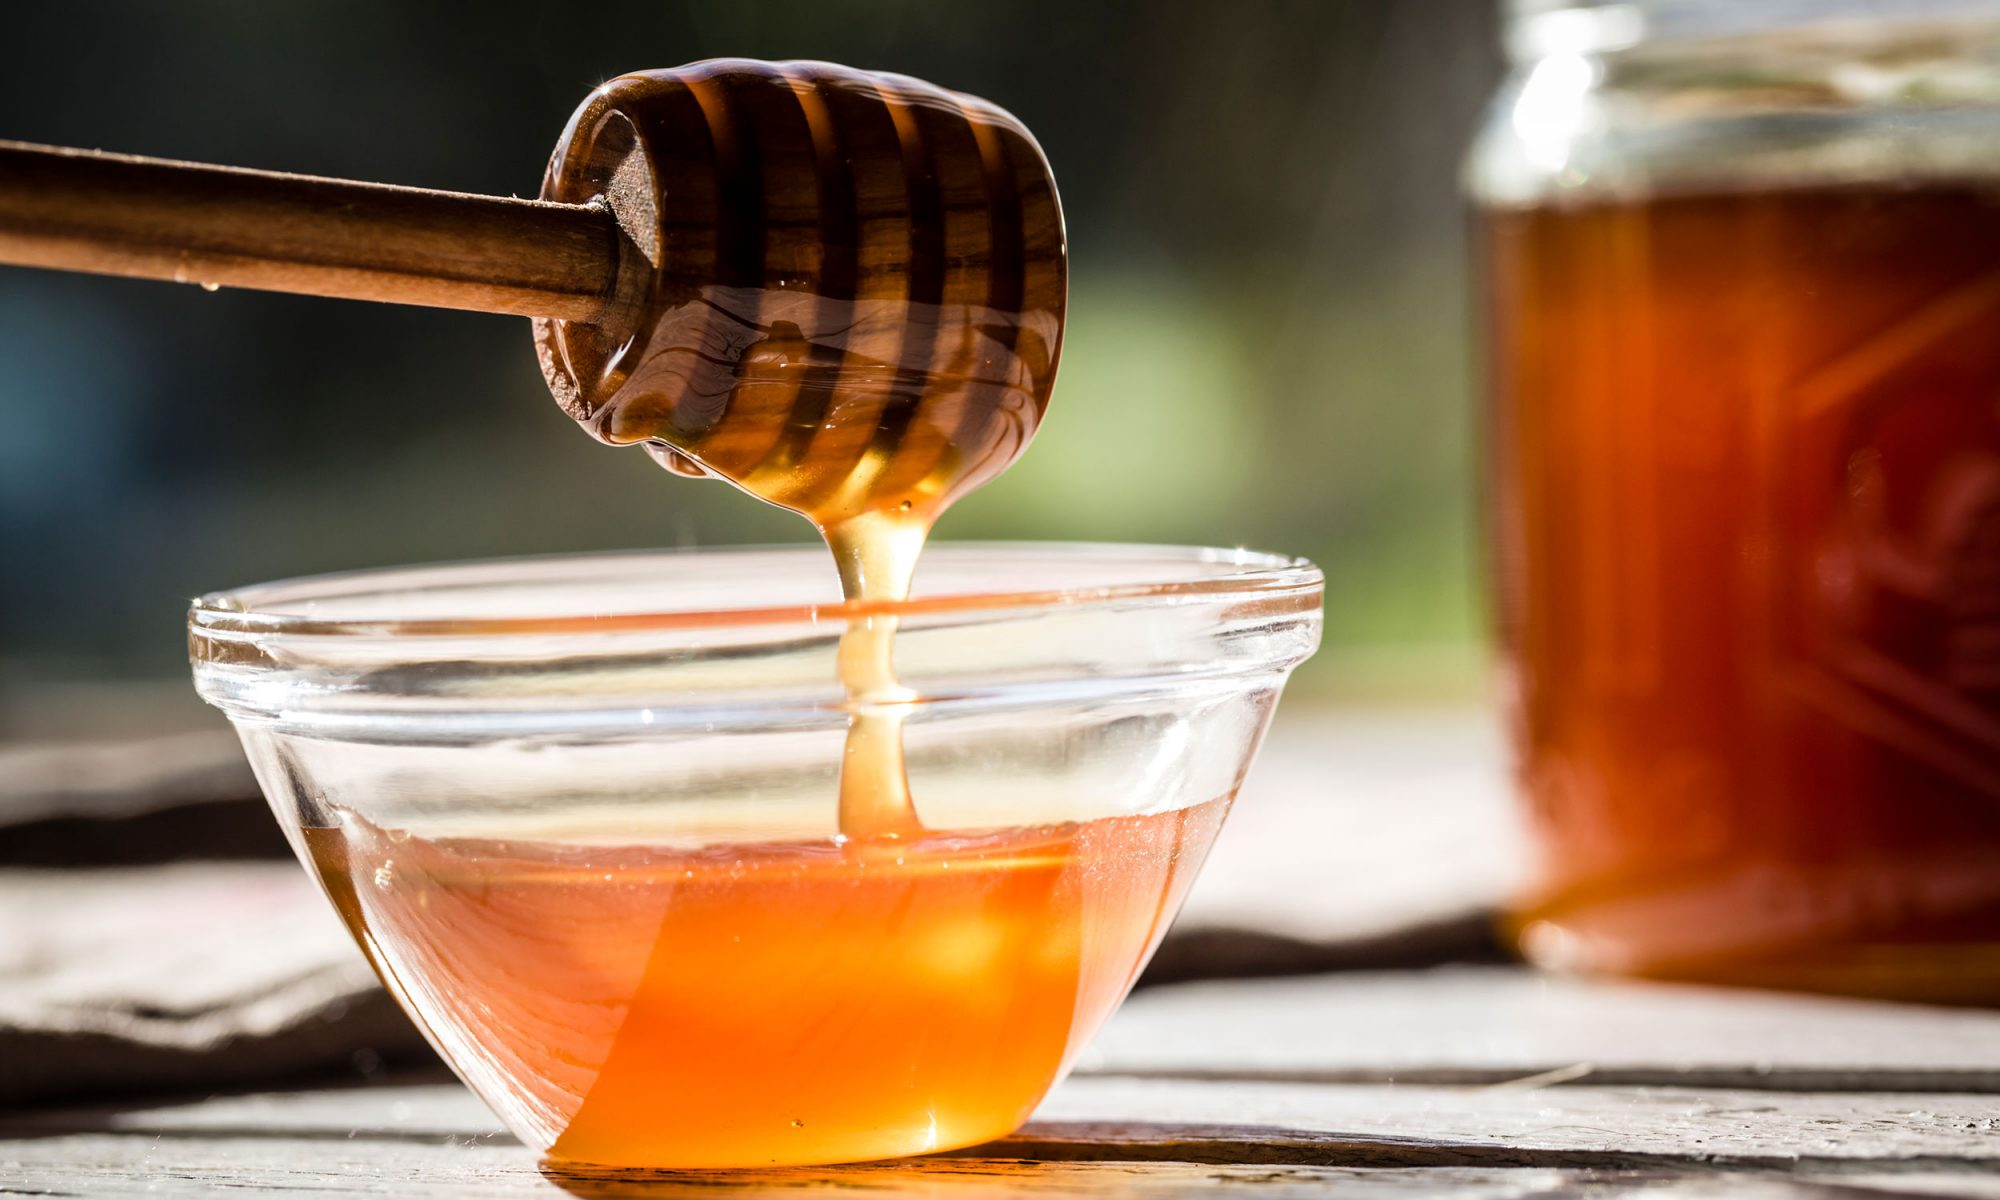 pesticides found in honey